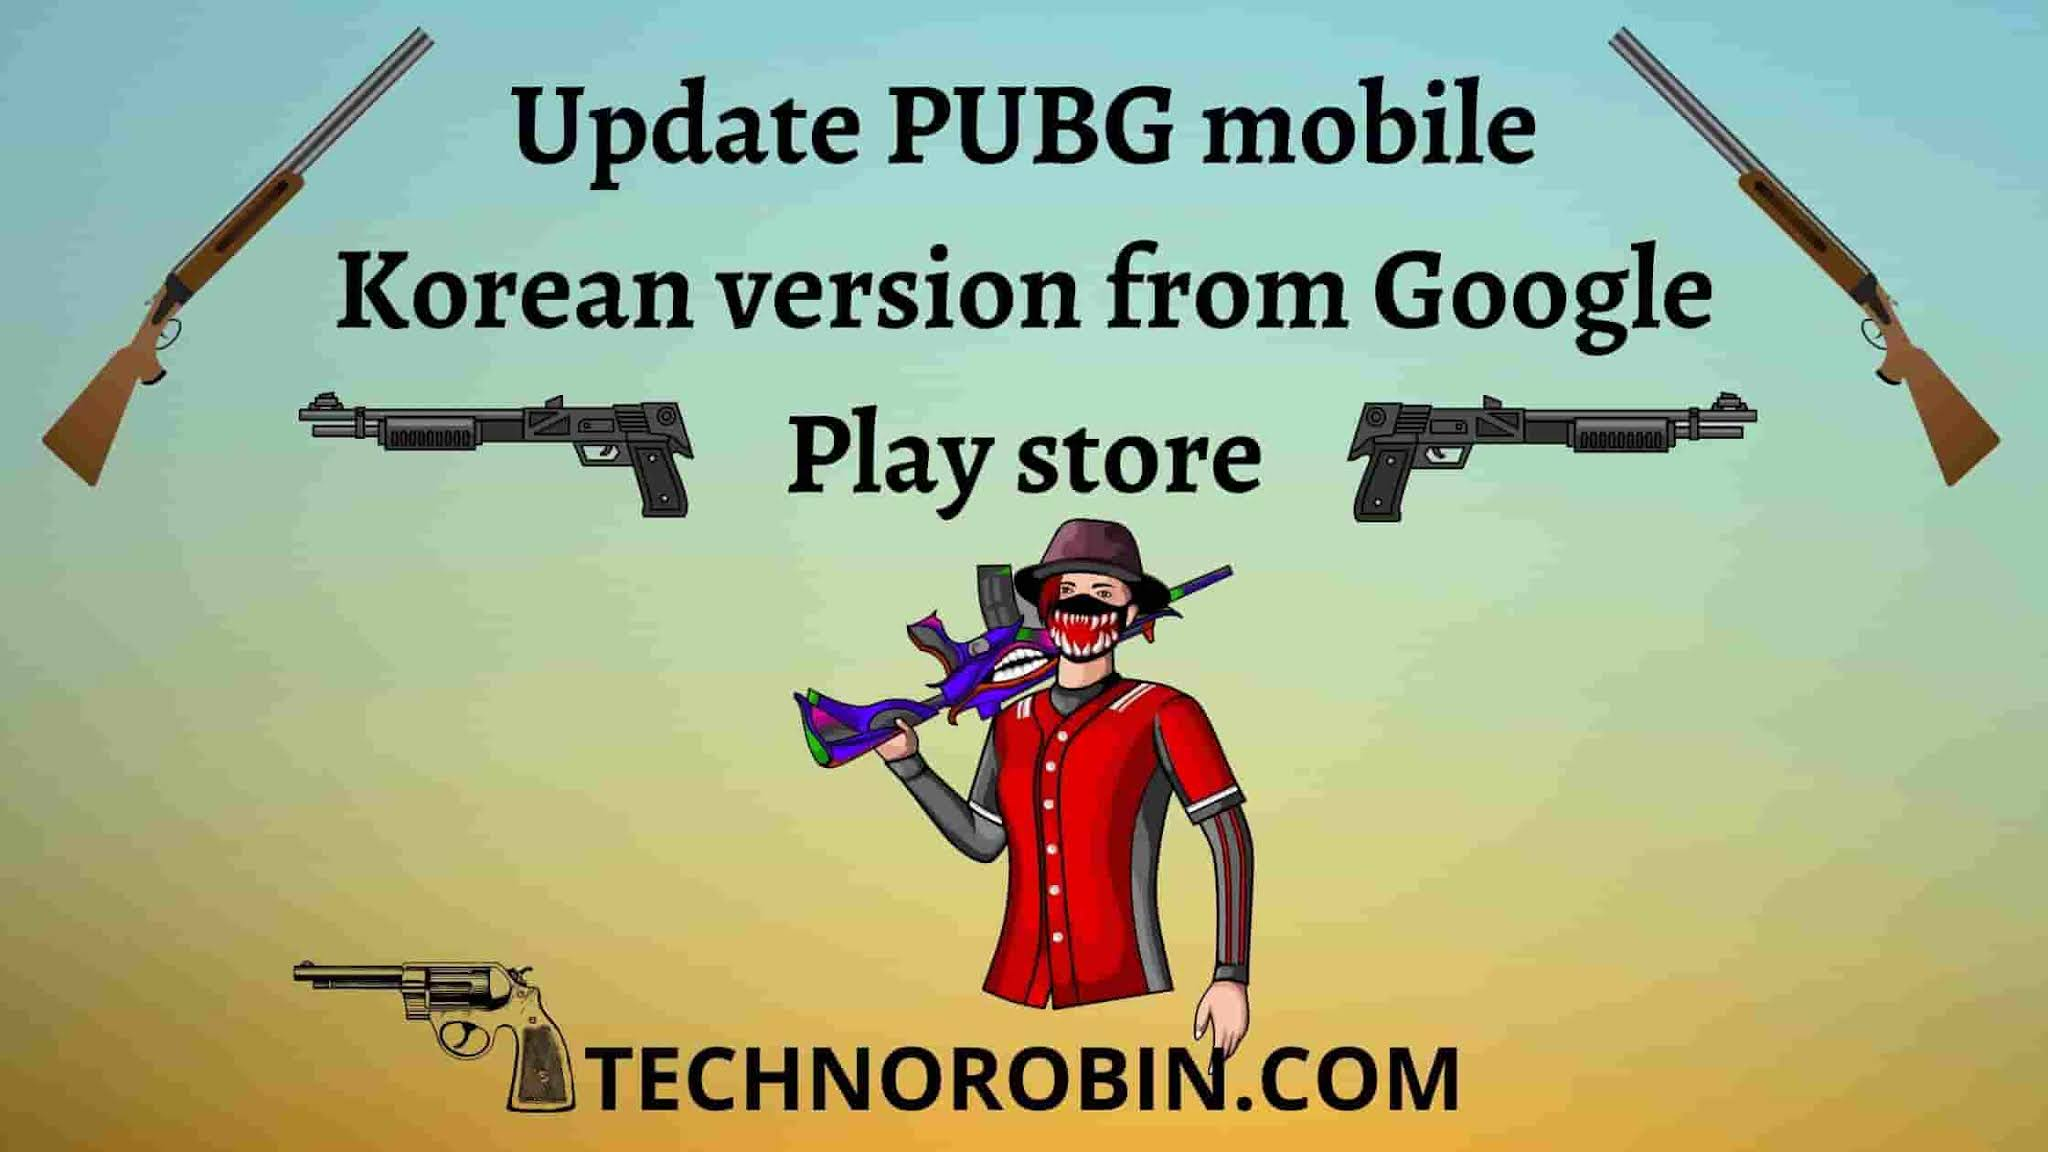 update PUBG mobile Korean version from Google Play store